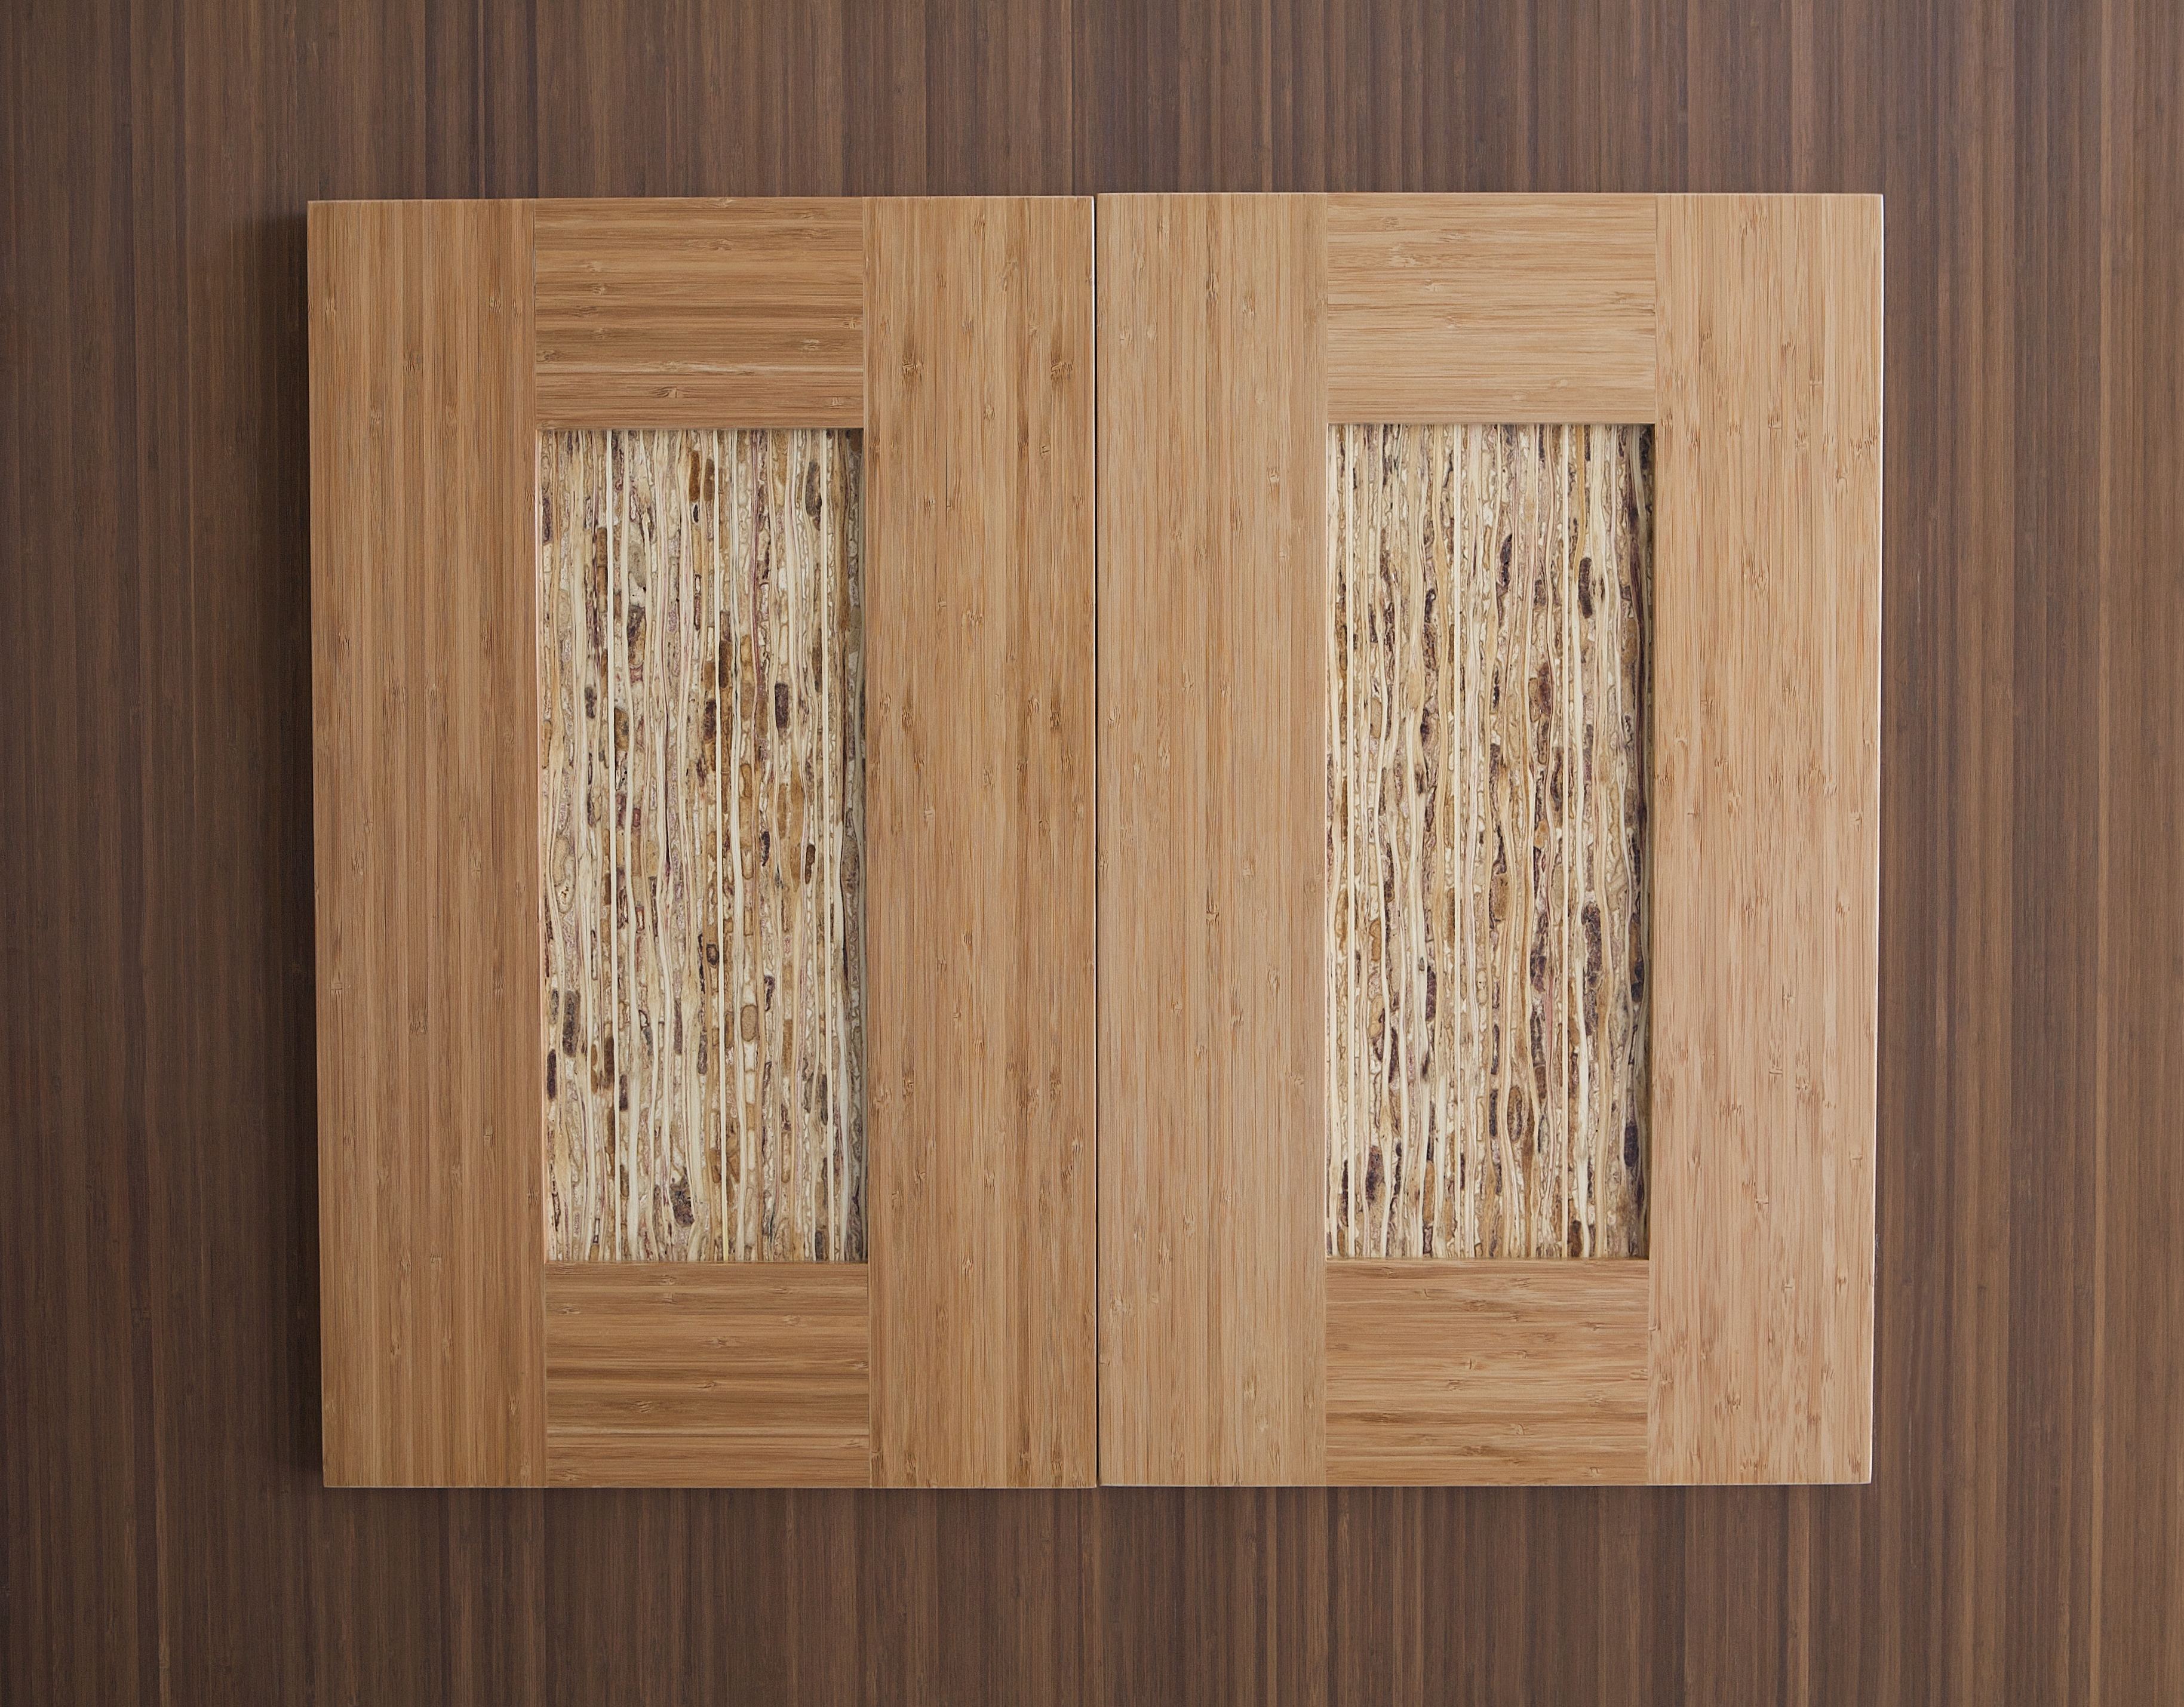 Bamboo-Carbonized-Kirei-Board-Cabinet-Residential-Bathroom-2